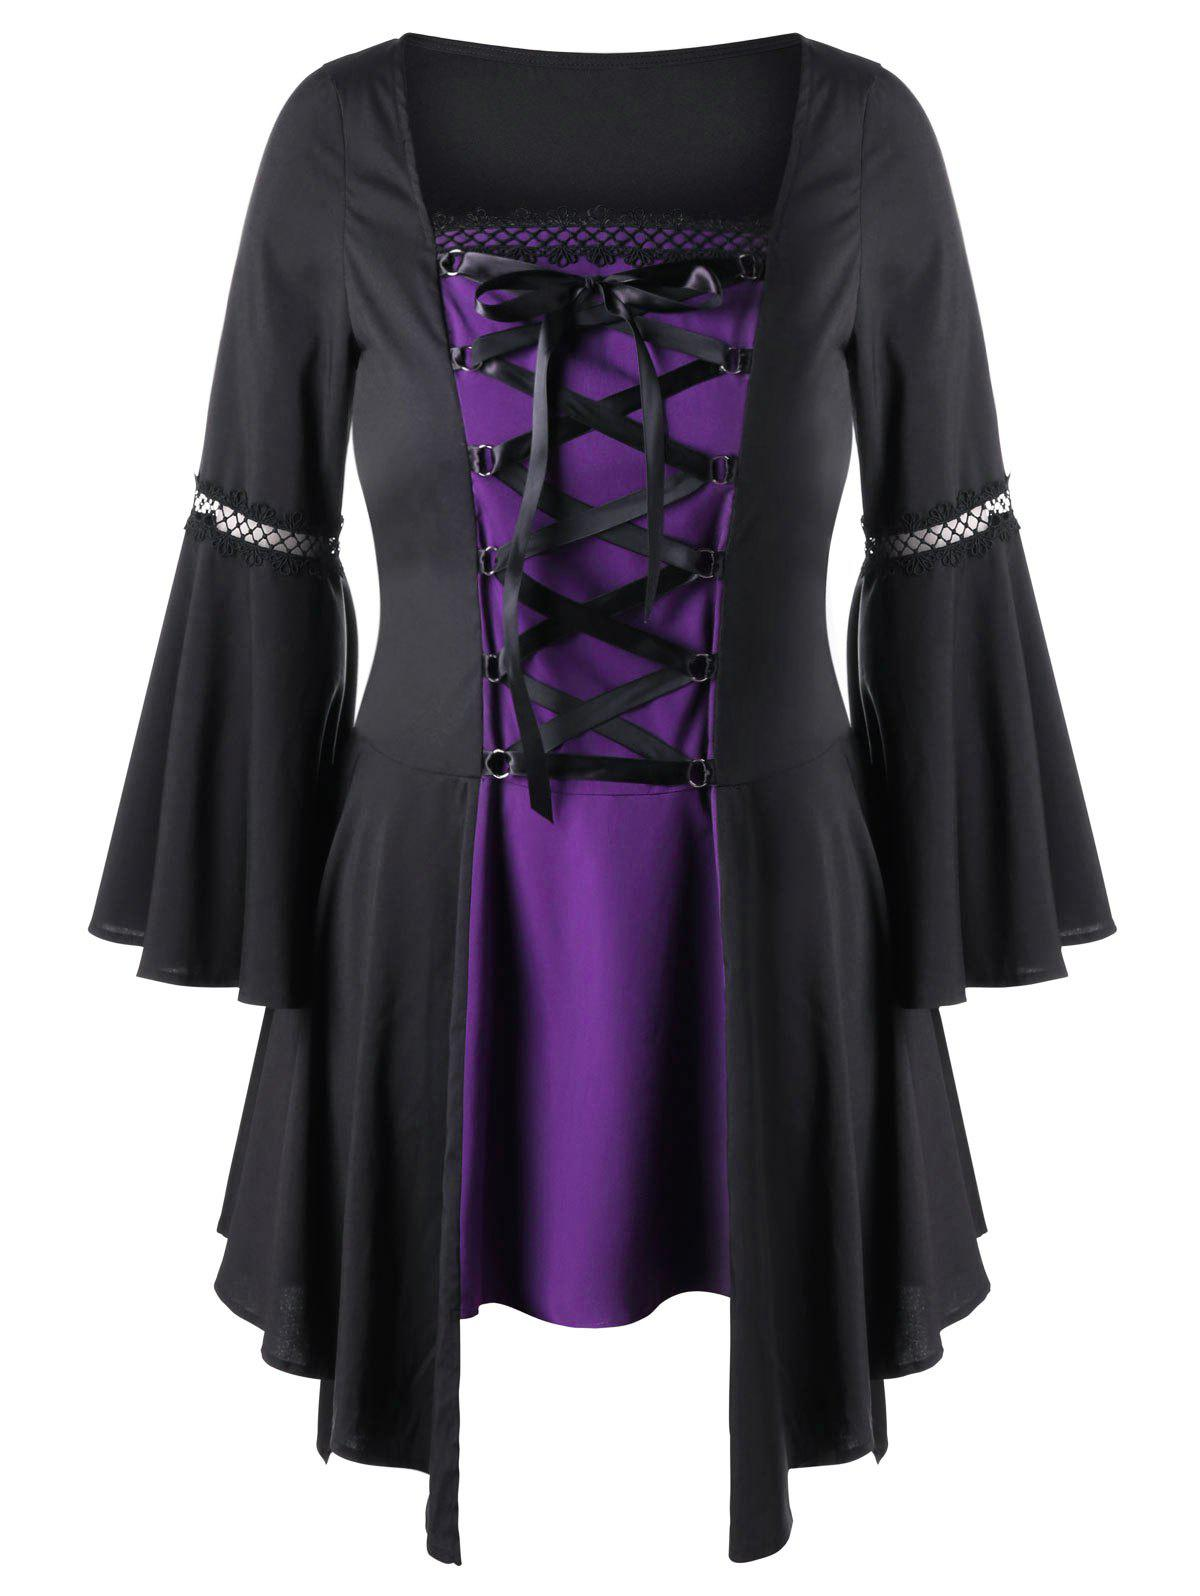 Plus Size Lace Up Handkerchief Hem TopWOMEN<br><br>Size: 4XL; Color: BLACK AND PURPLE; Material: Polyester; Shirt Length: Long; Sleeve Length: Full; Collar: Square Neck; Style: Gothic; Season: Fall,Spring; Pattern Type: Solid; Weight: 0.3500kg; Package Contents: 1 x Top;